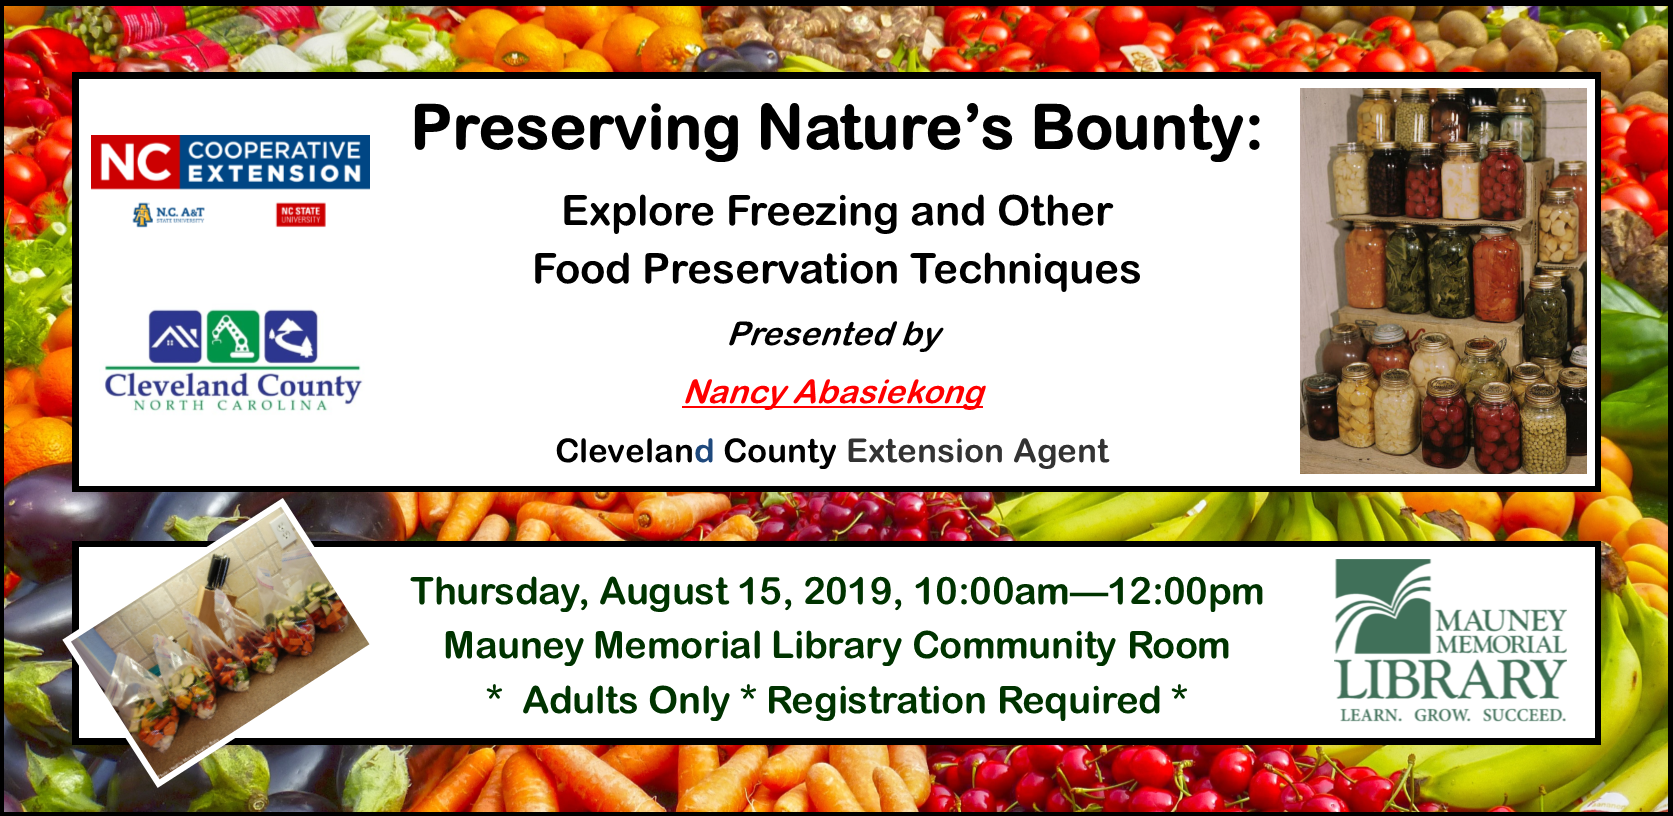 Preserving Nature's Bounty: Explore Freezing and other Food Preservation Techniques